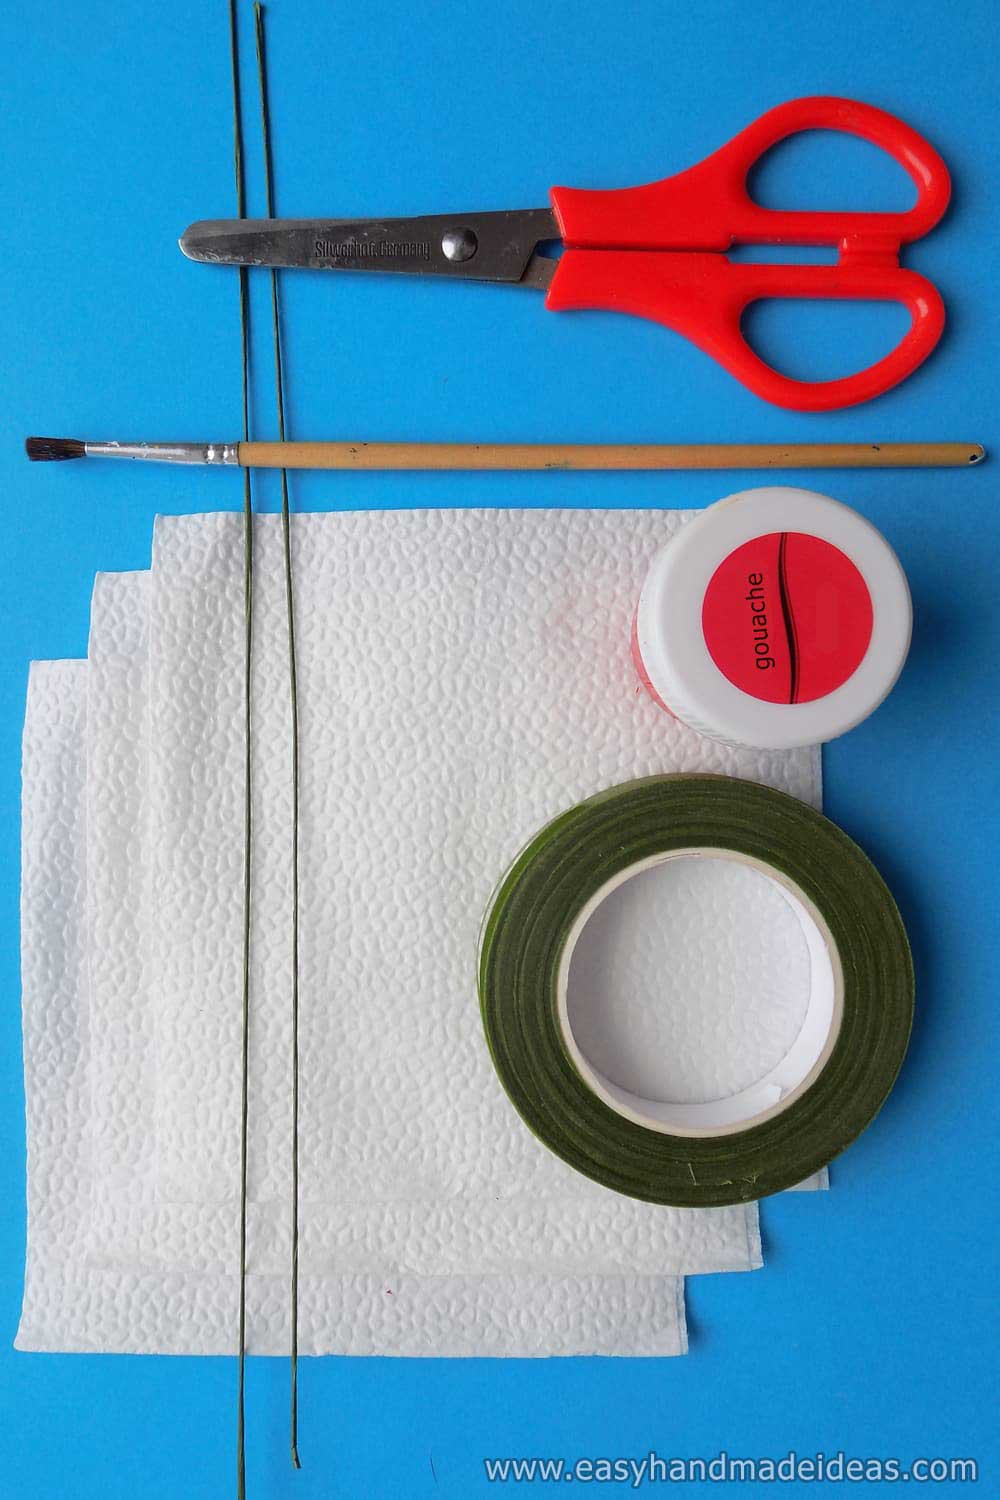 Tools and Materials for Paper Flower